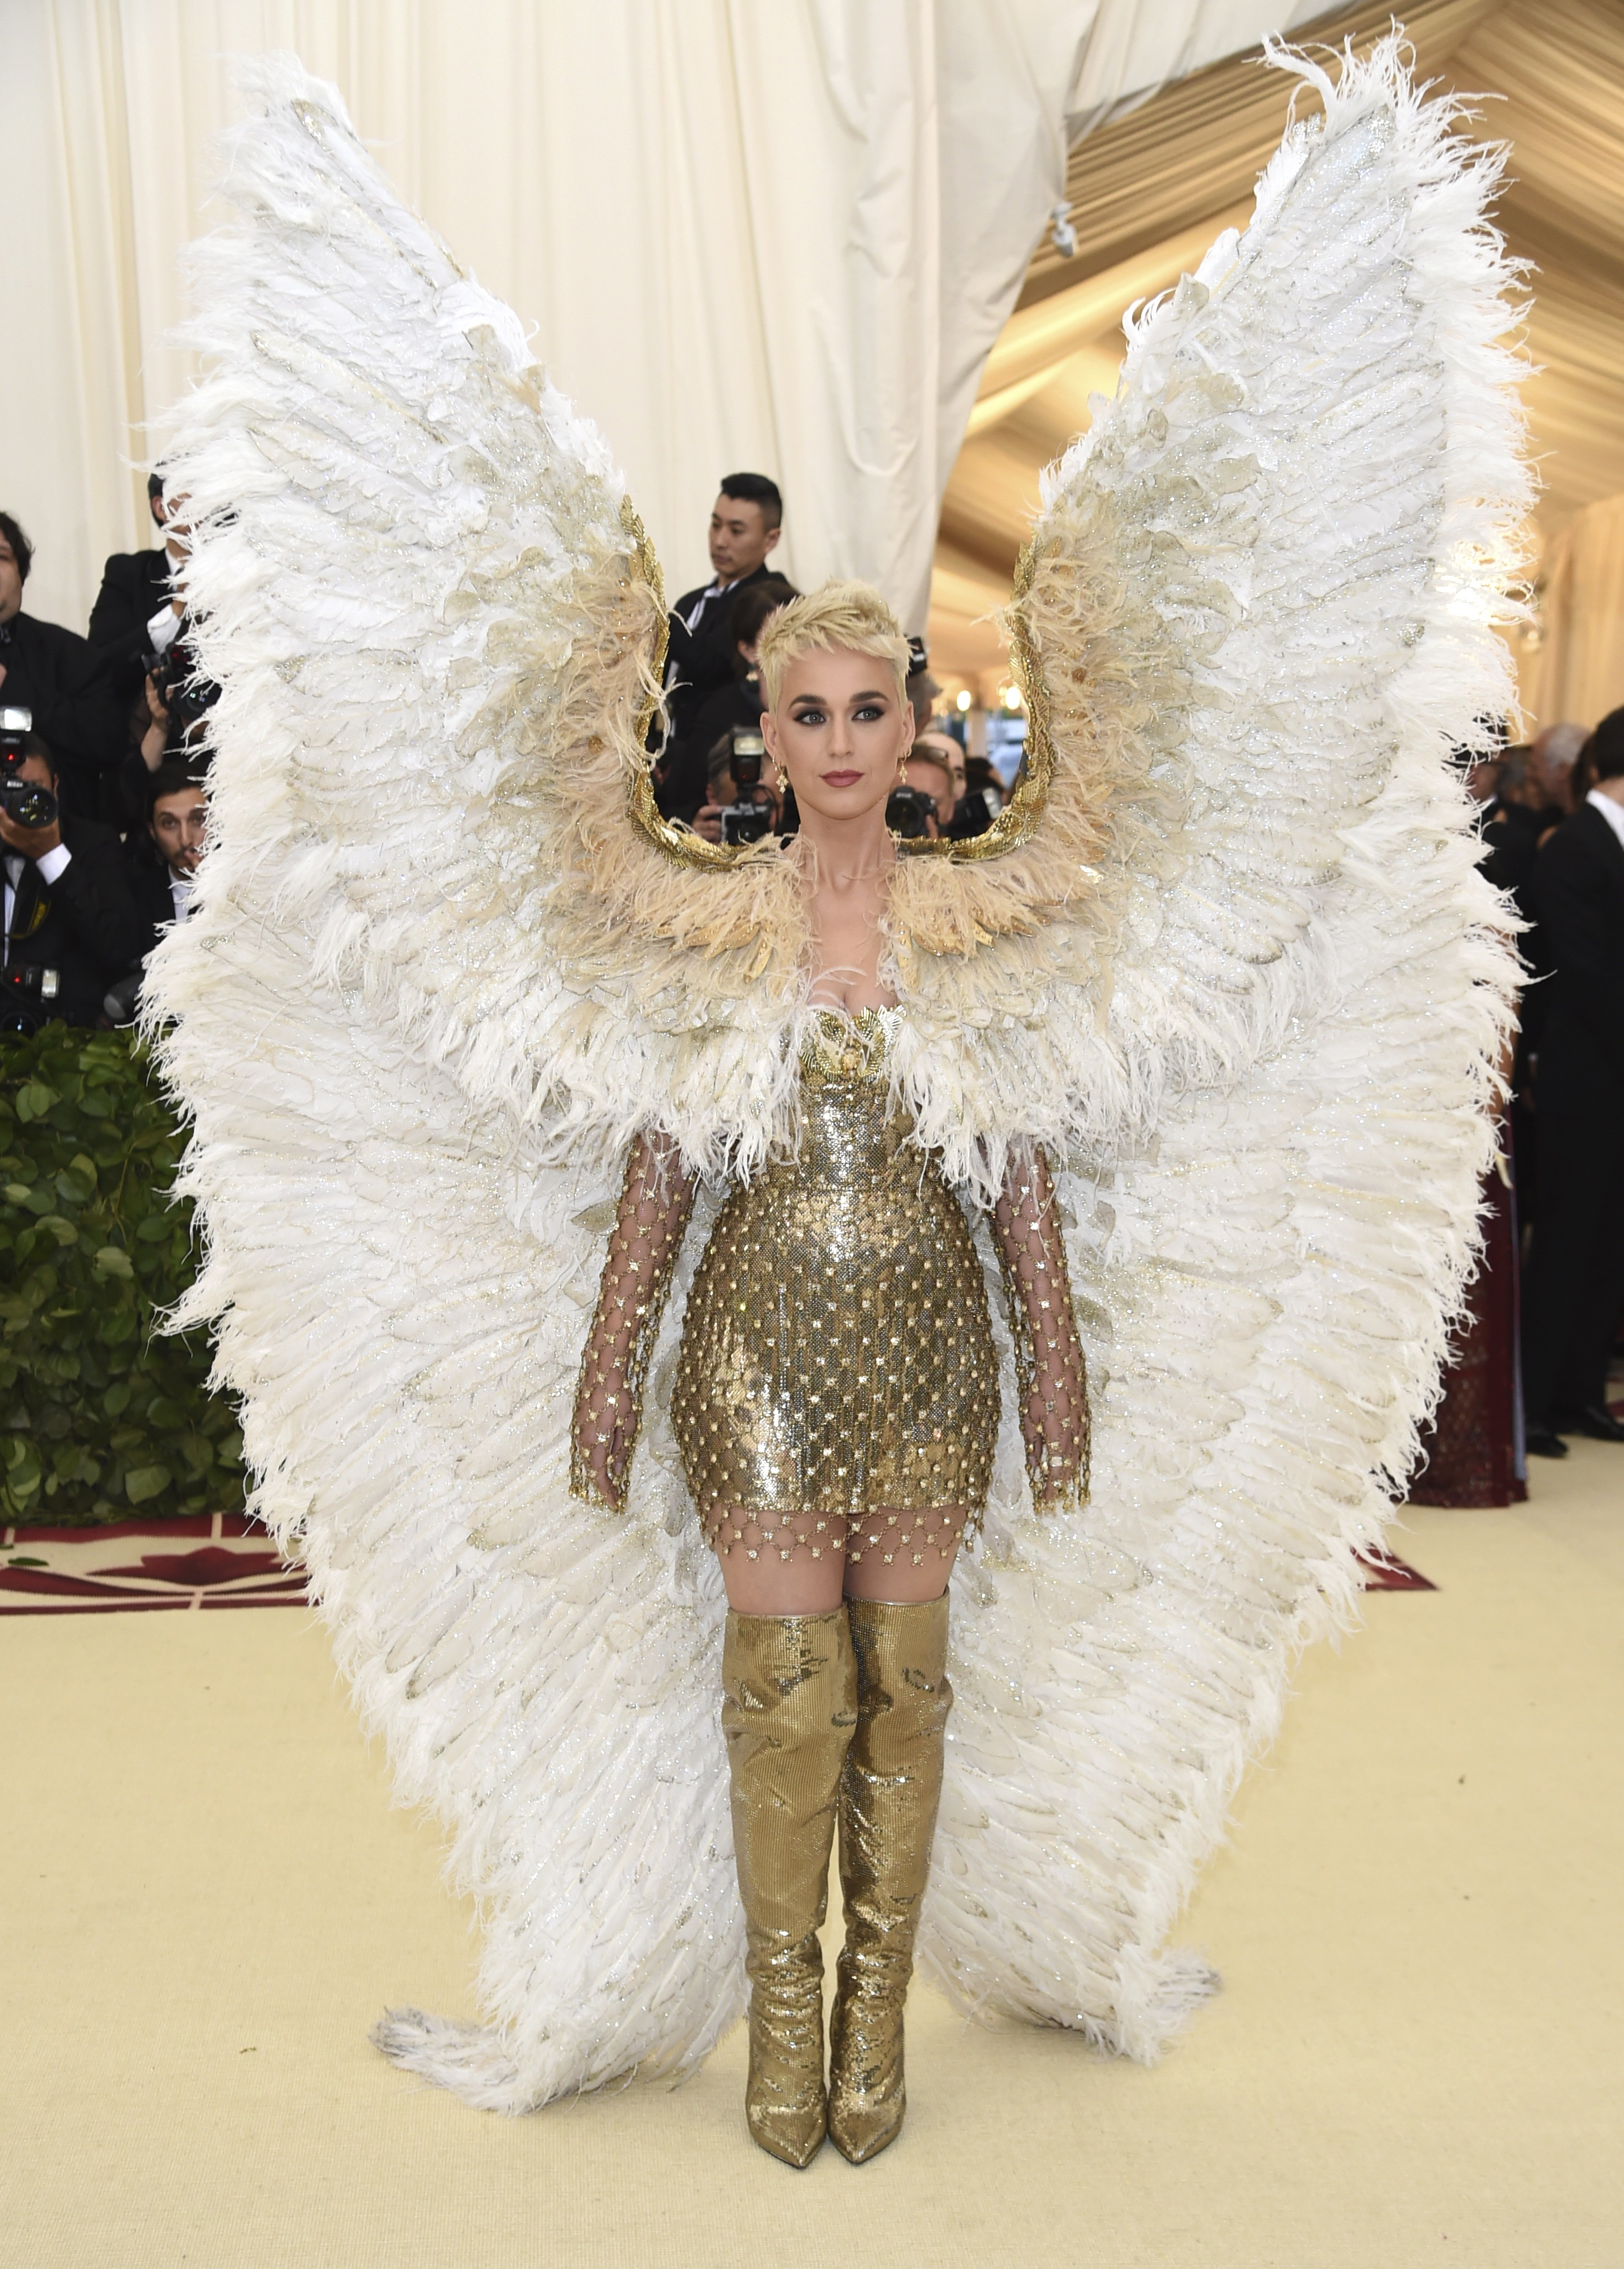 "<div class=""meta image-caption""><div class=""origin-logo origin-image none""><span>none</span></div><span class=""caption-text"">Katy Perry (Photo by Evan Agostini/Invision/AP) (Evan Agostini/Invision/AP)</span></div>"